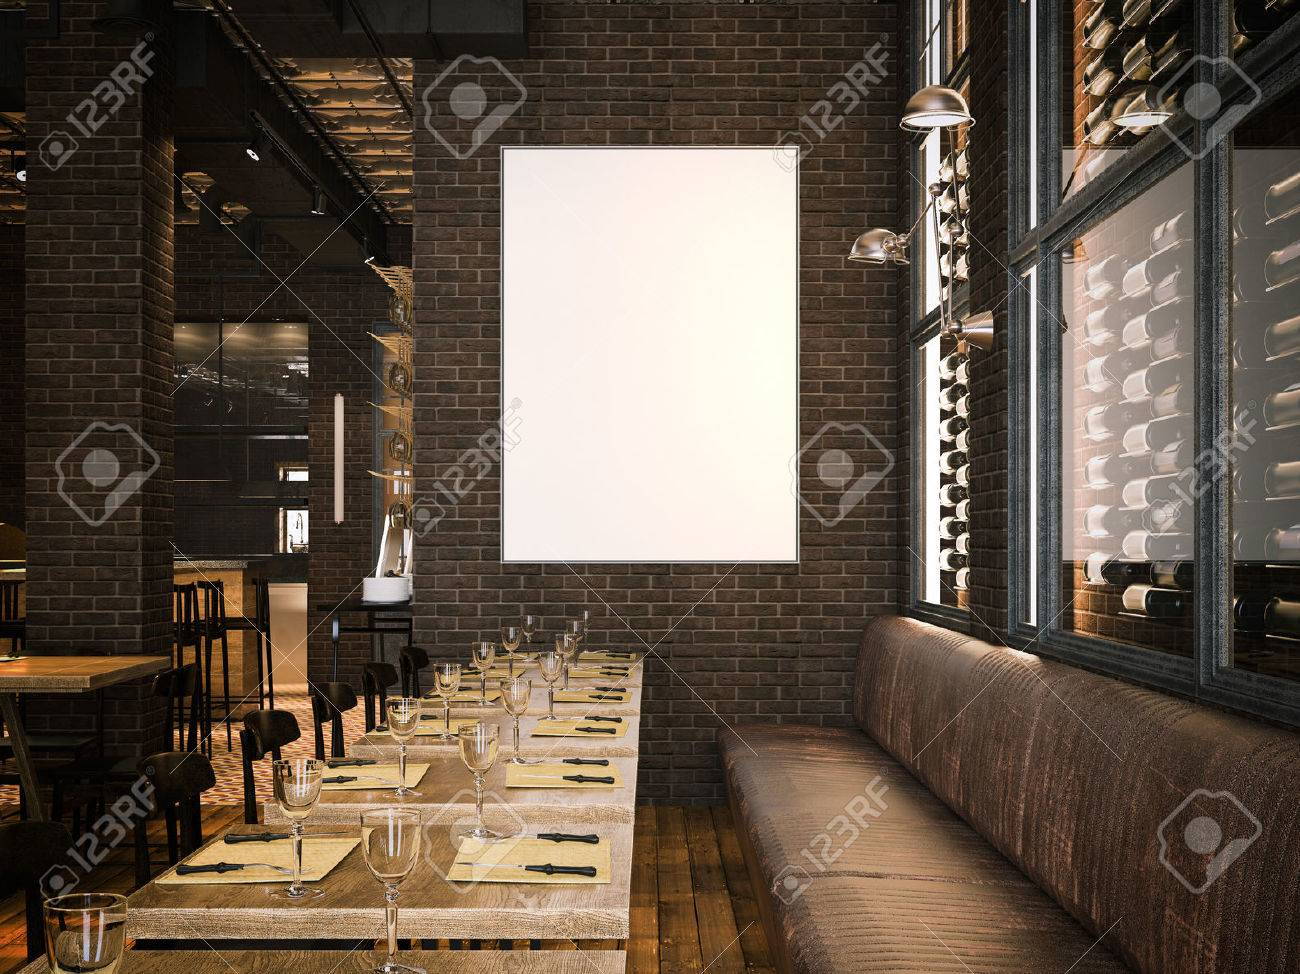 Interior of the vintage restaurant and blank canvas. 3d rendering - 77885647